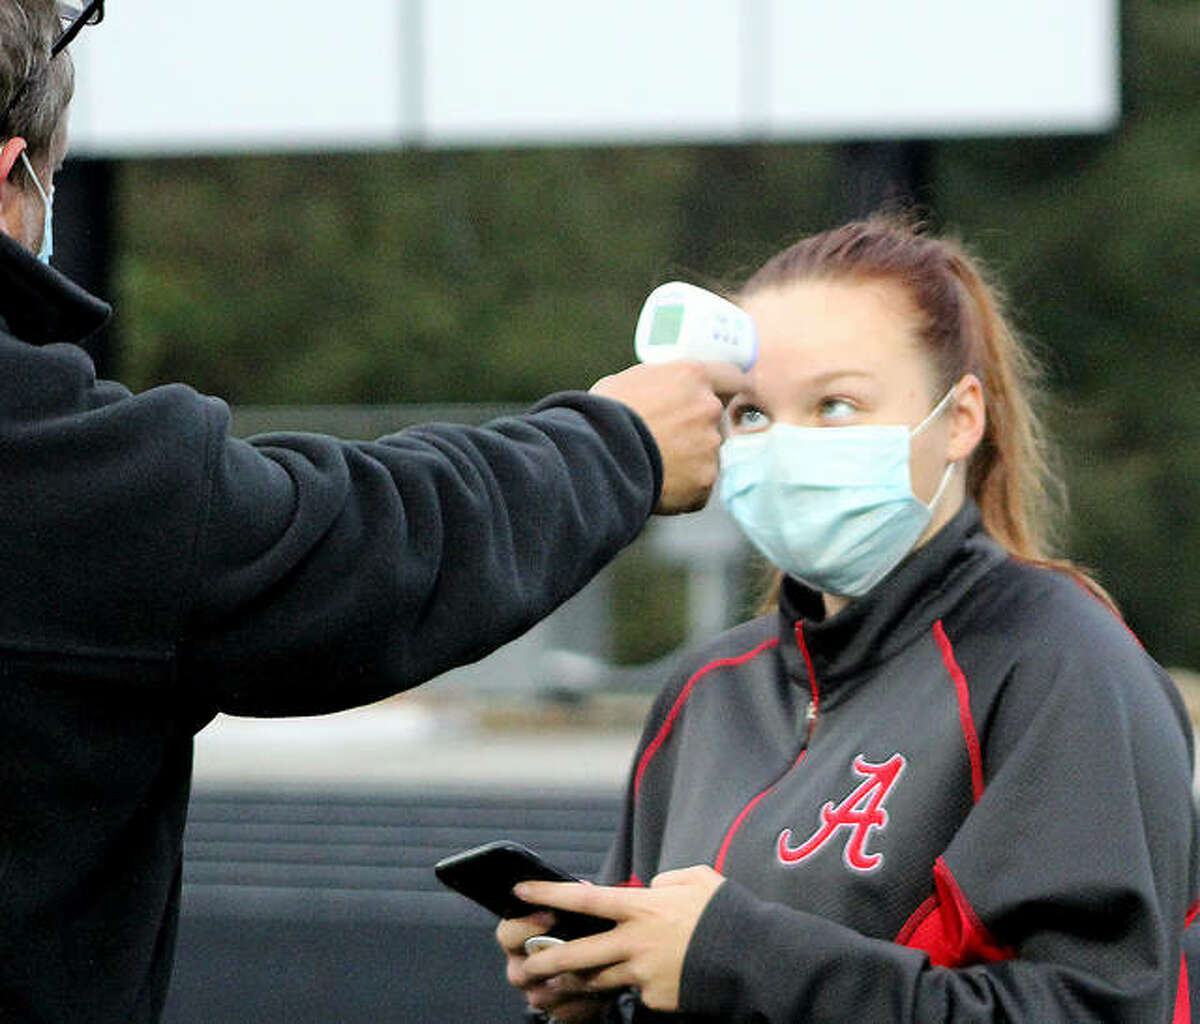 Alton soccer player Addison Miller has her temperature checked as part of the coronavirus protocol prior to a practice session last spring. On Wednesday evening, the Illinois High School association said it will require masks for all athletes participating this fall in indoor sports, including practices. Swimmers and divers will not have to wear masks during competition, but will be required to wear them when they are not competing.